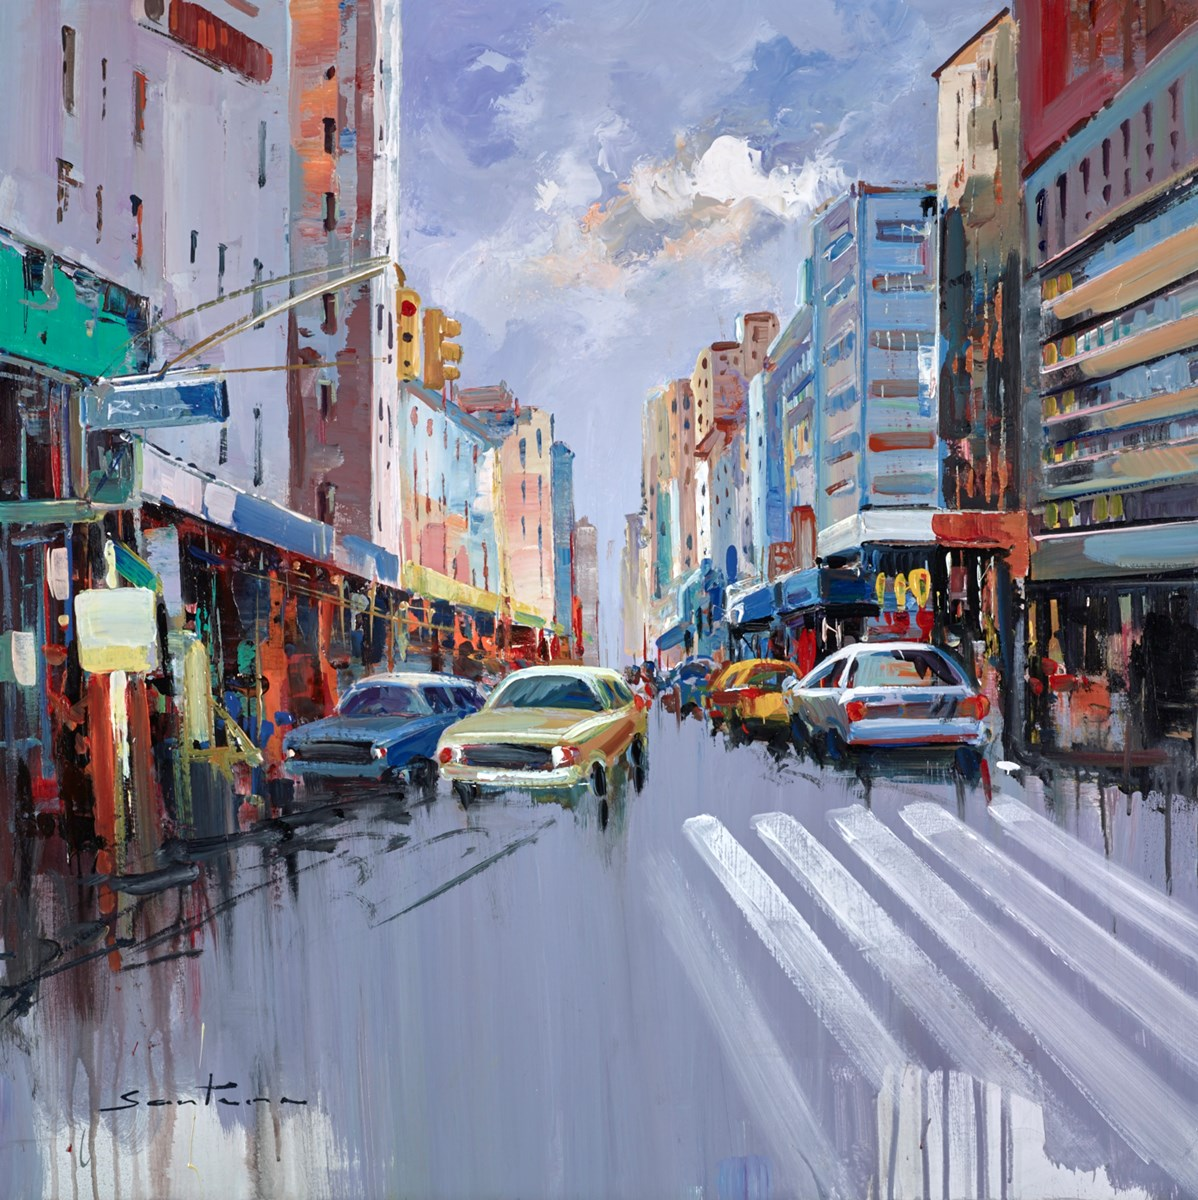 City Streets I by santana -  sized 32x32 inches. Available from Whitewall Galleries